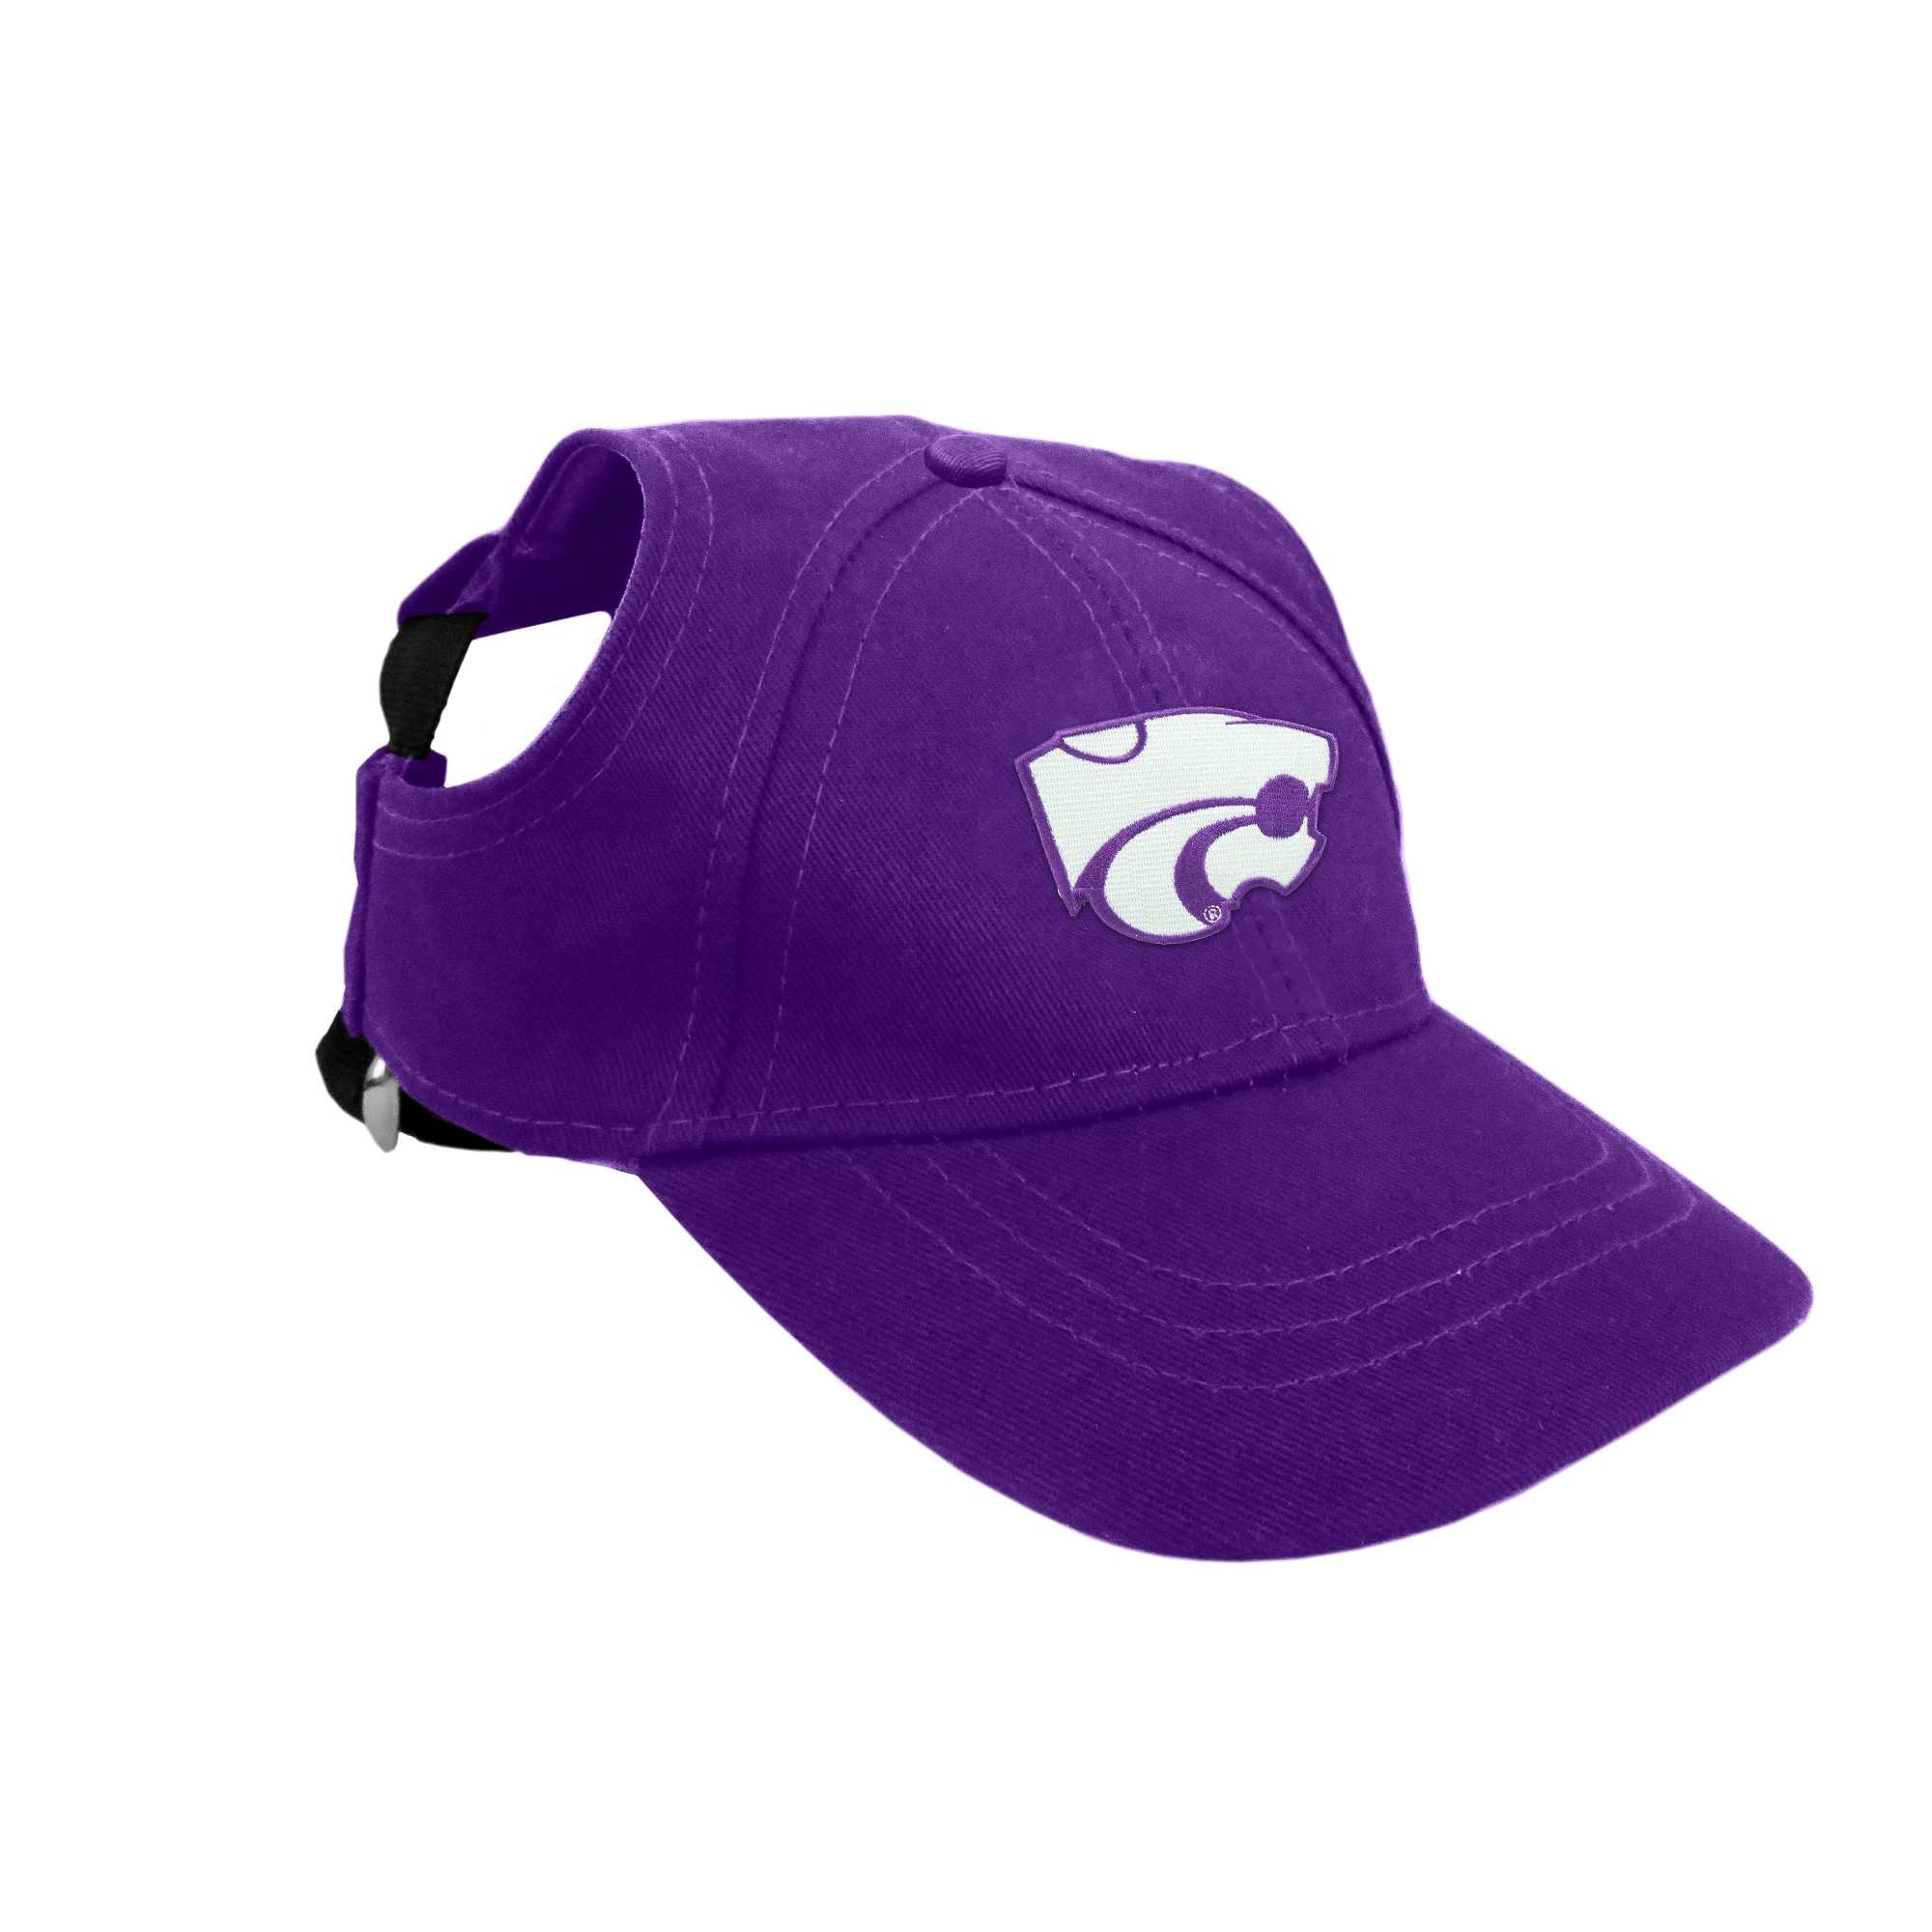 the best attitude de3f8 89b31 K-State Youth Purple 9Forty Cap   Love Purple   Baseball hats, Kansas state  wildcats, Hats